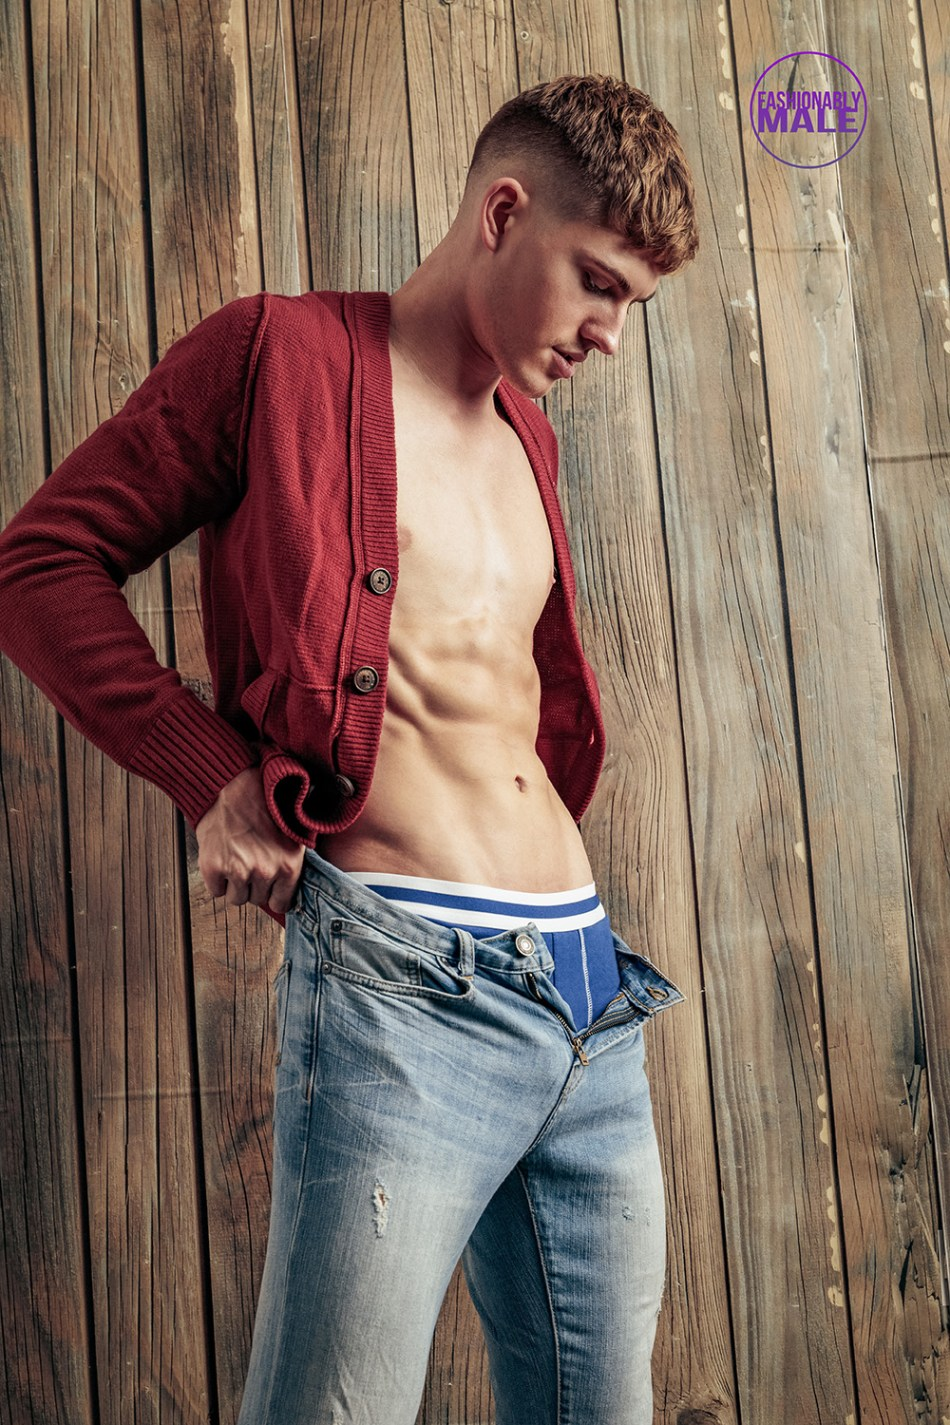 We're Fall for Linus Dodd in this pics by Lagaret